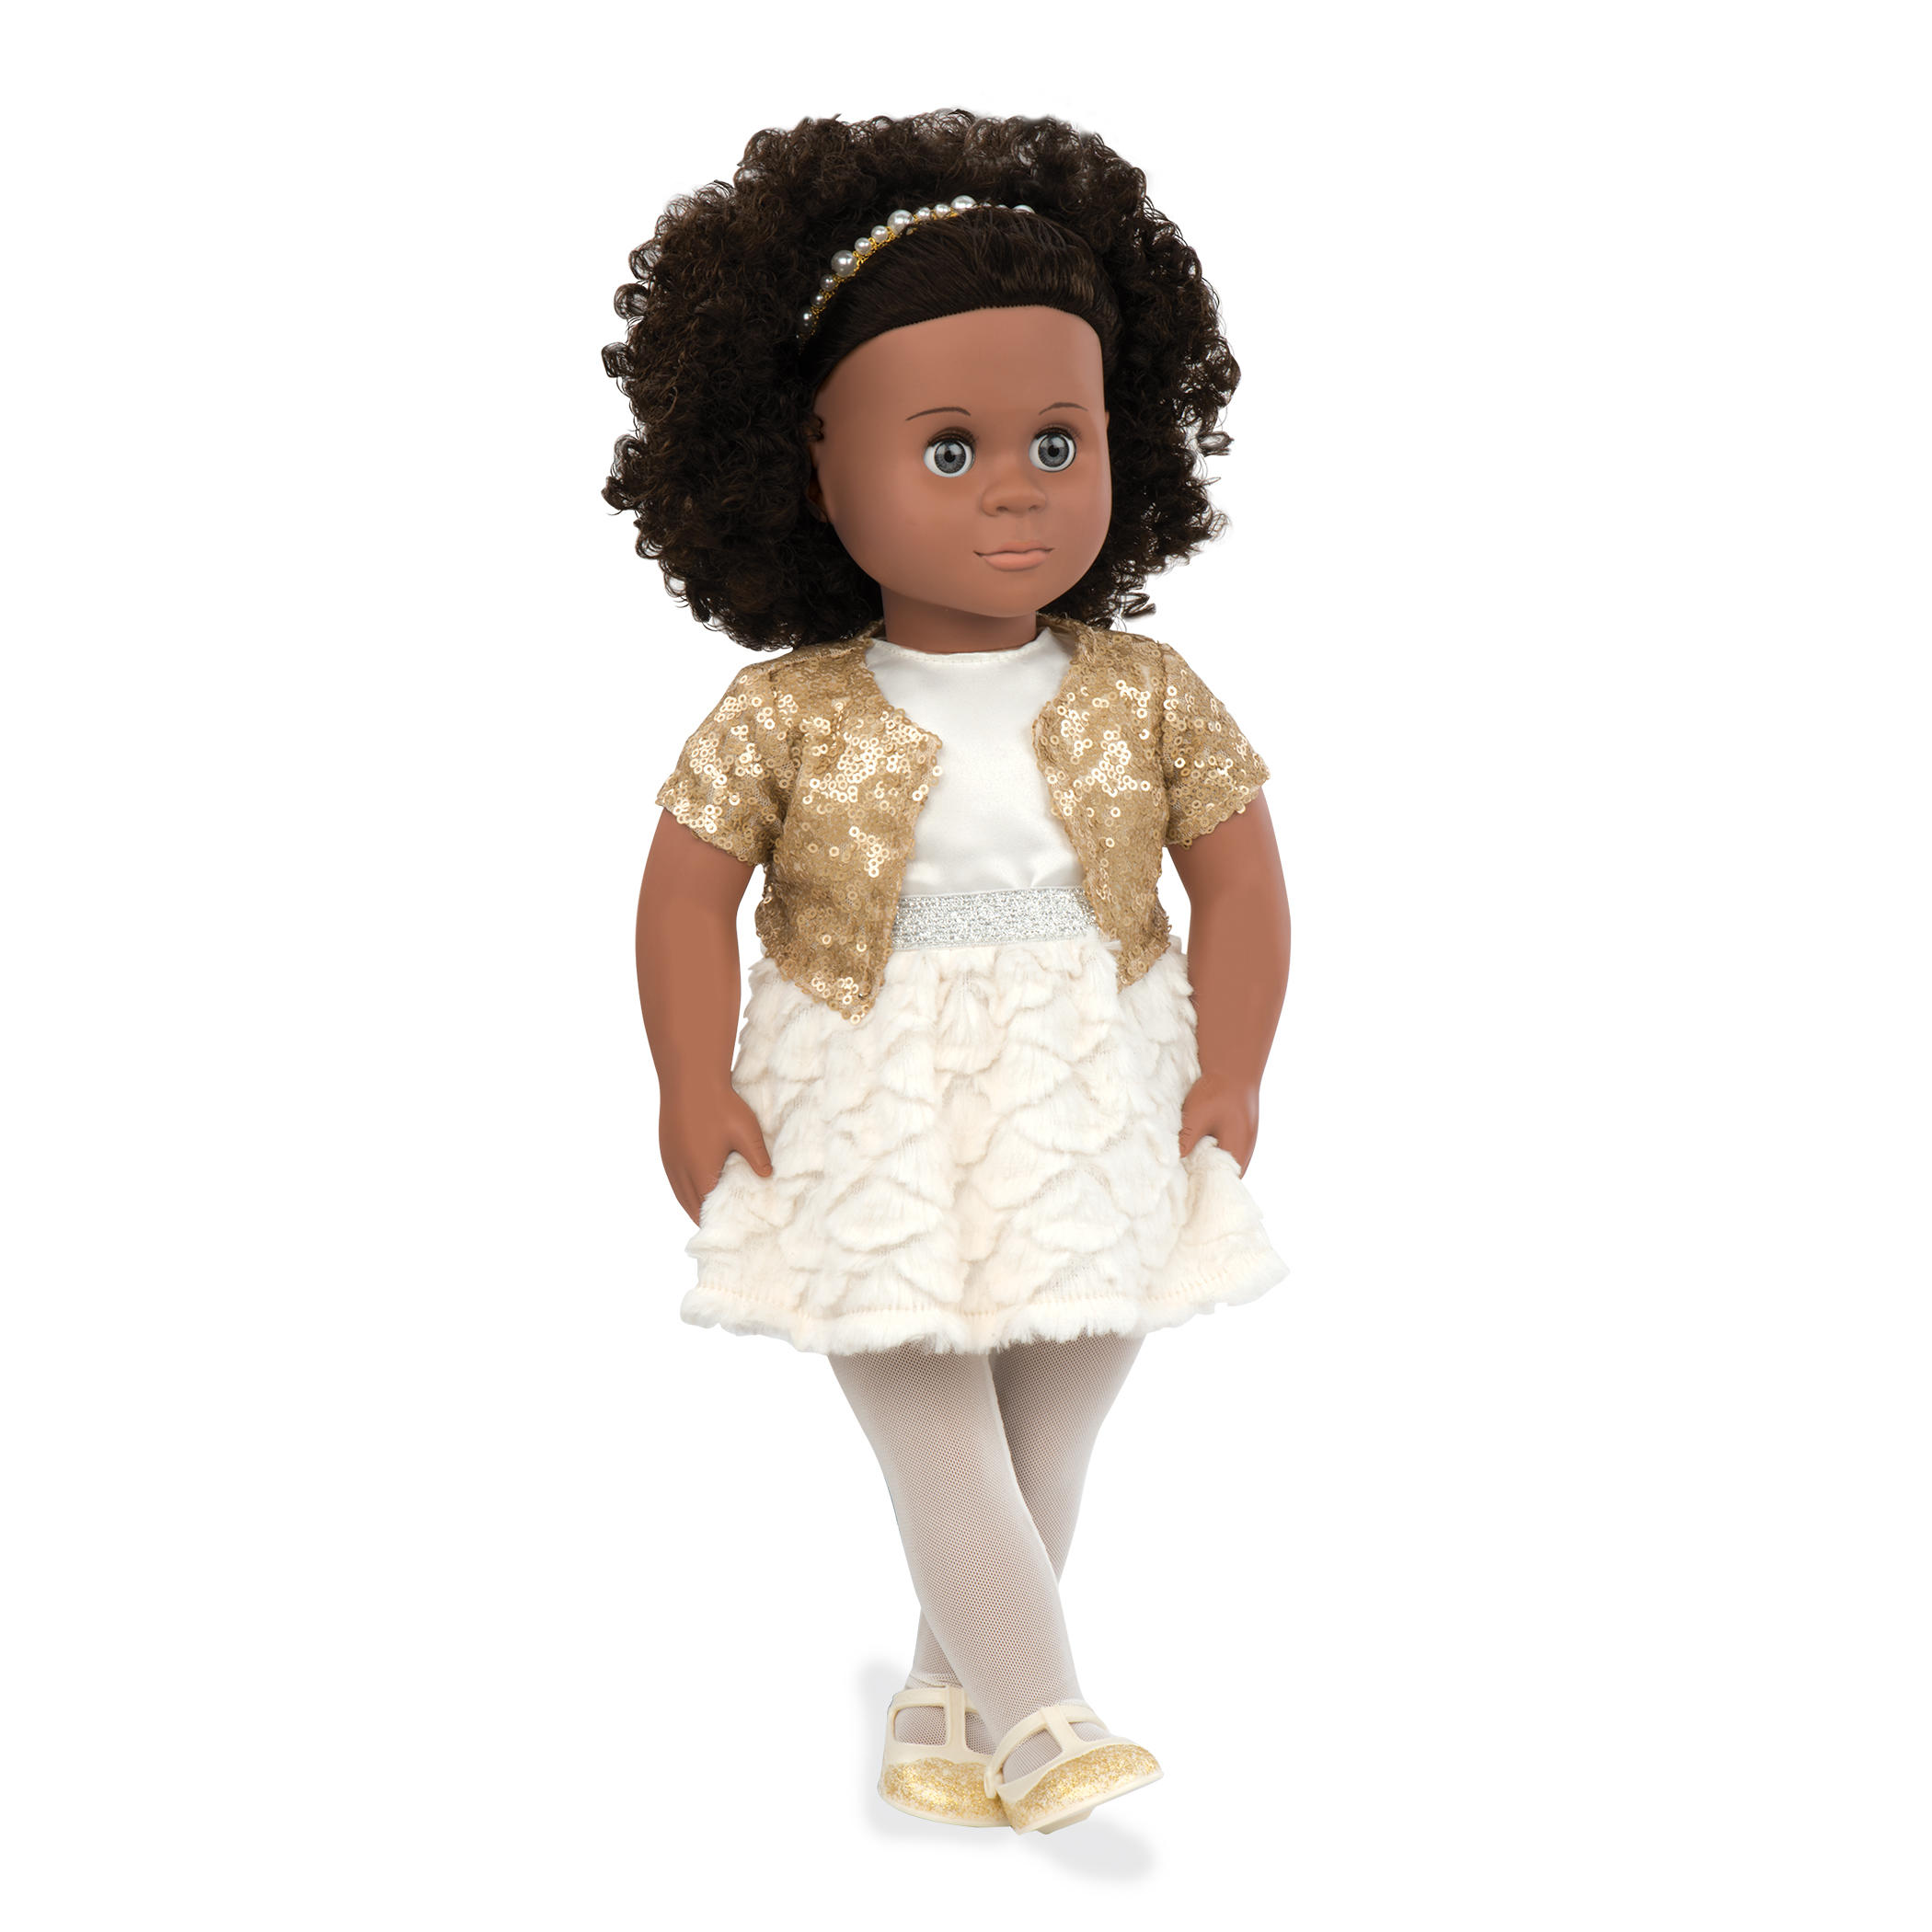 black doll in white dress and afro hair